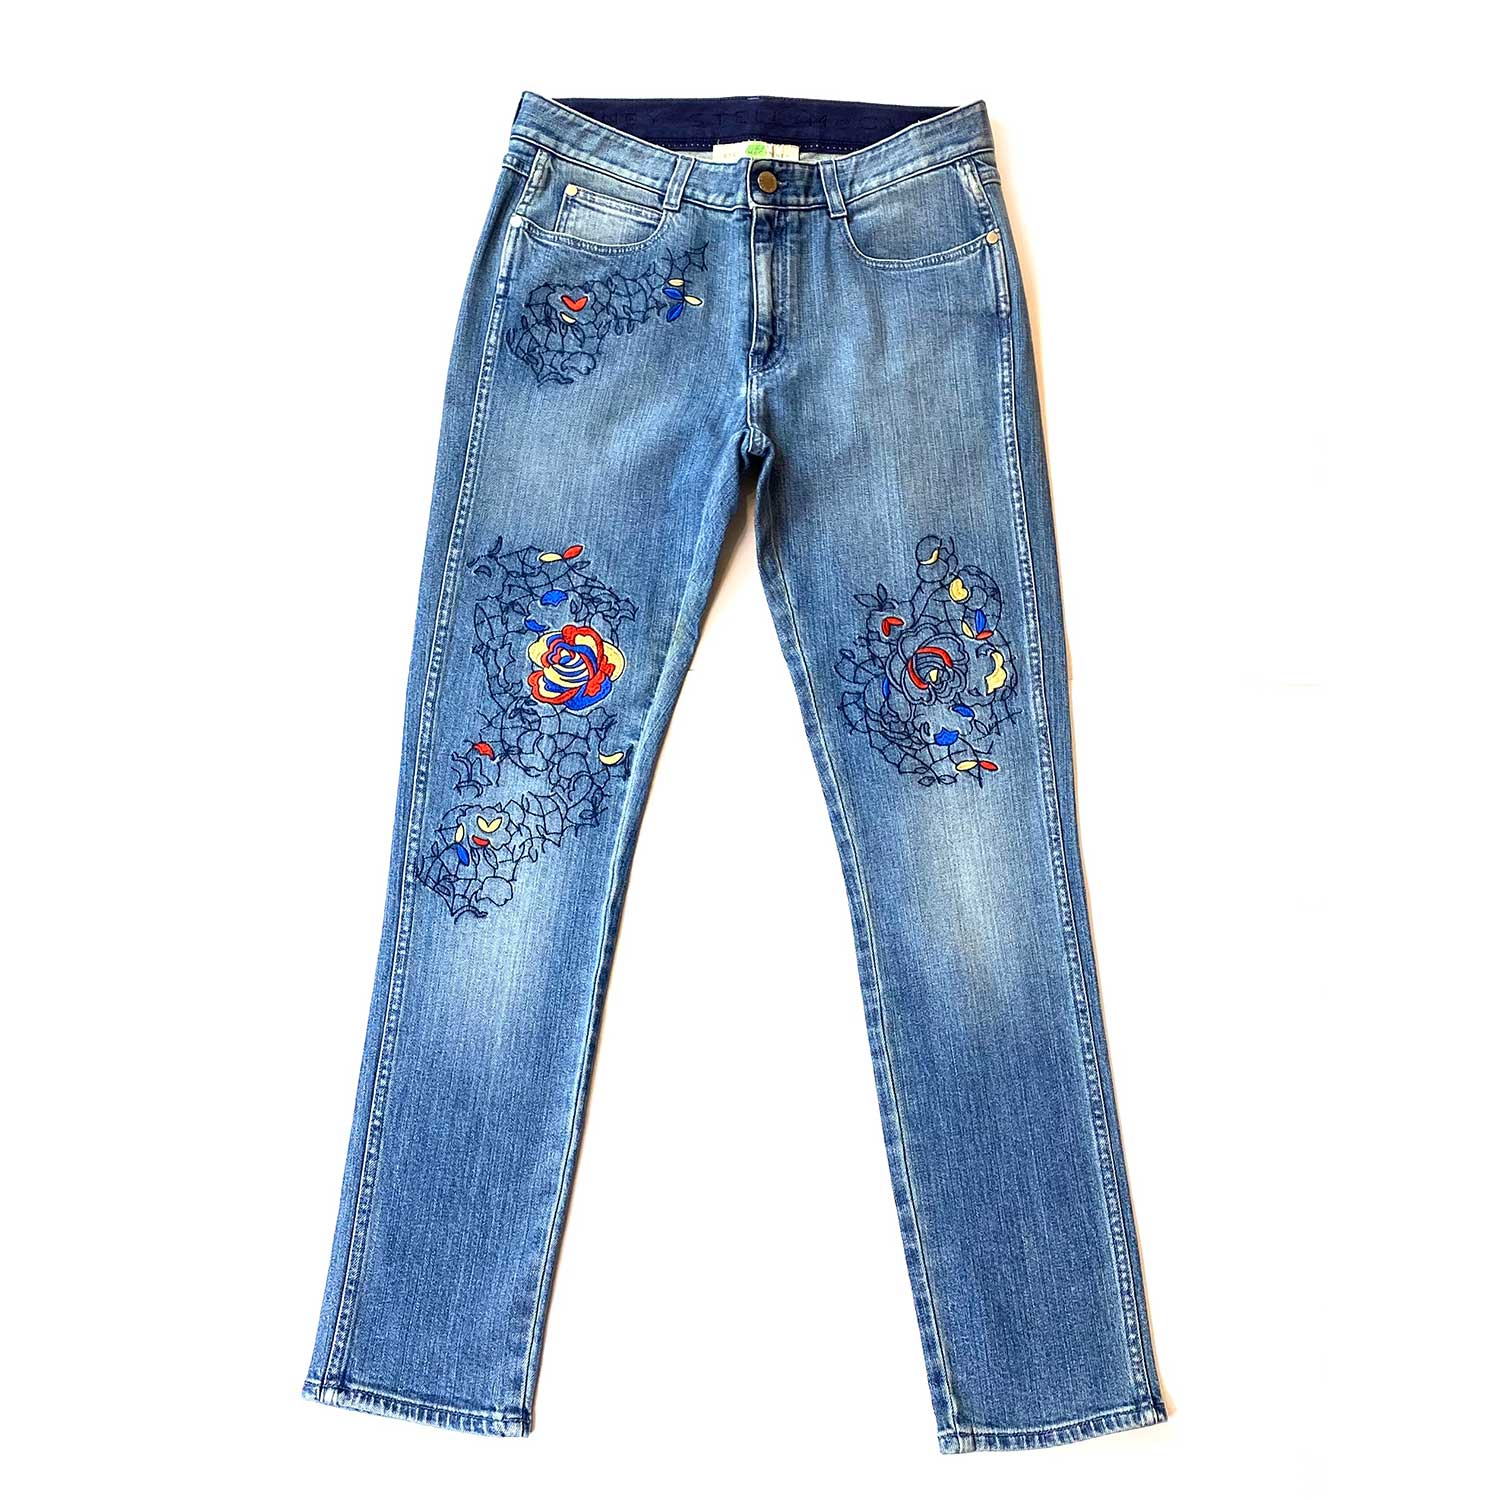 Calça Jeans Stella Mc Cartney Bordada